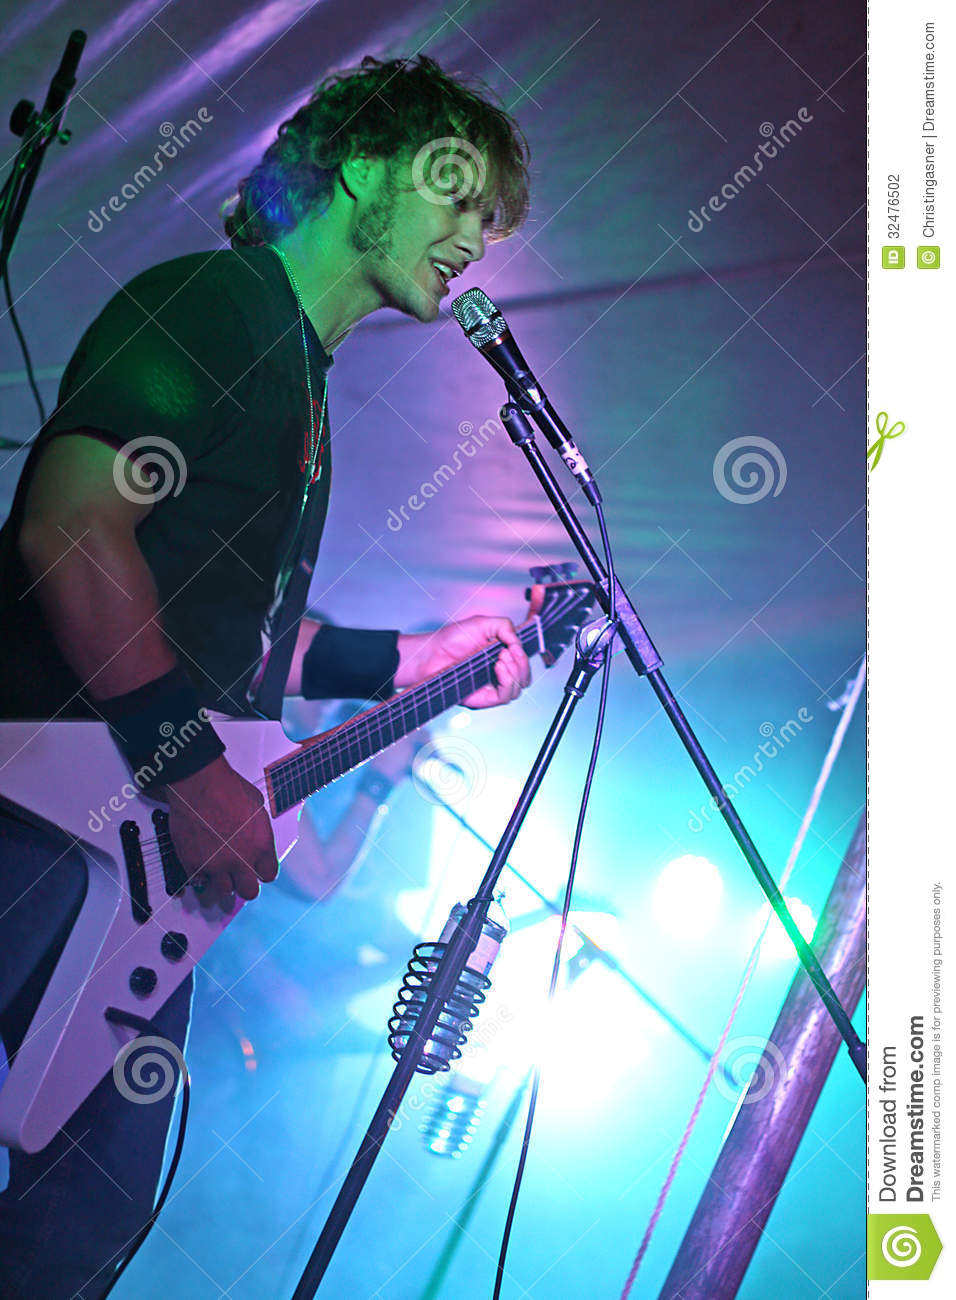 Guitar Player Singing Live in Concert